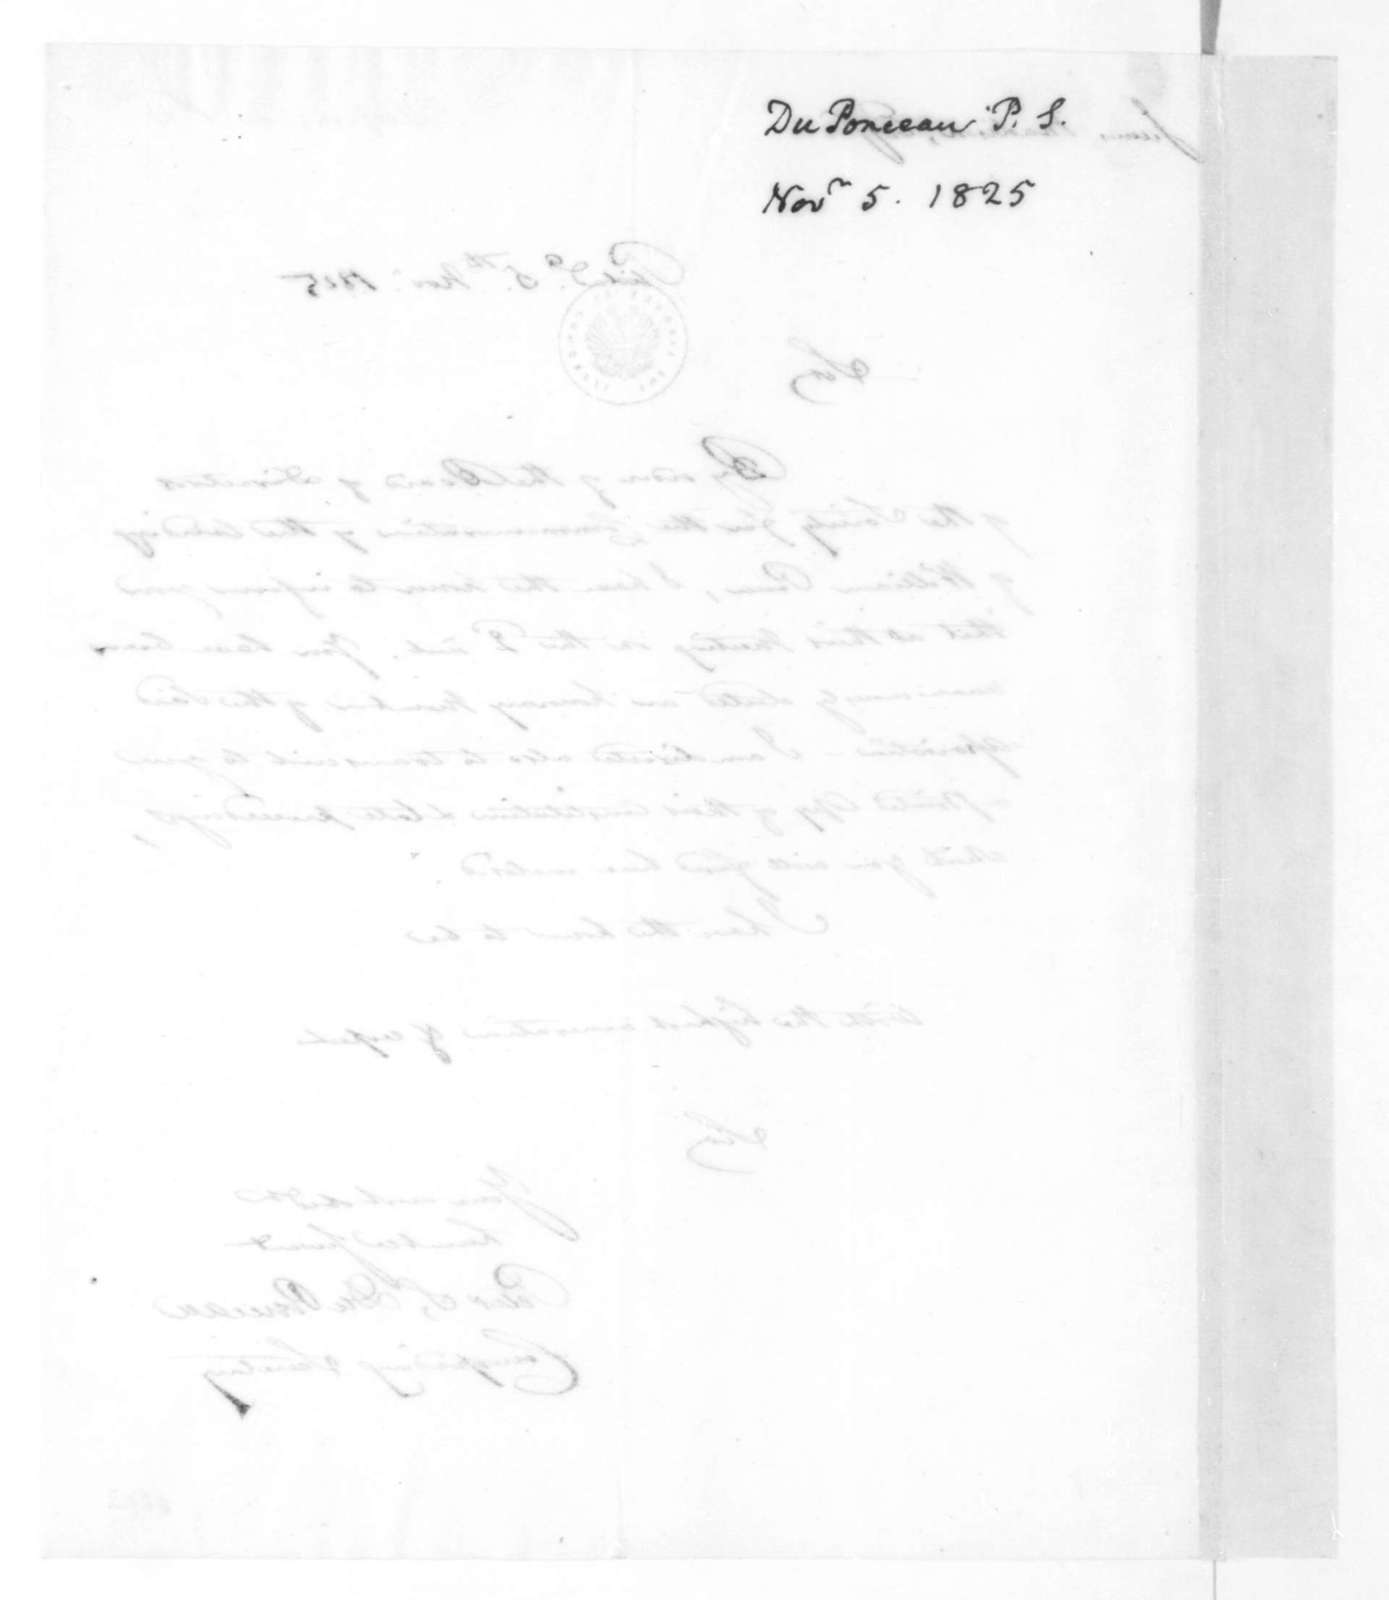 Peter S. Duponceau to James Madison, November 5, 1825.